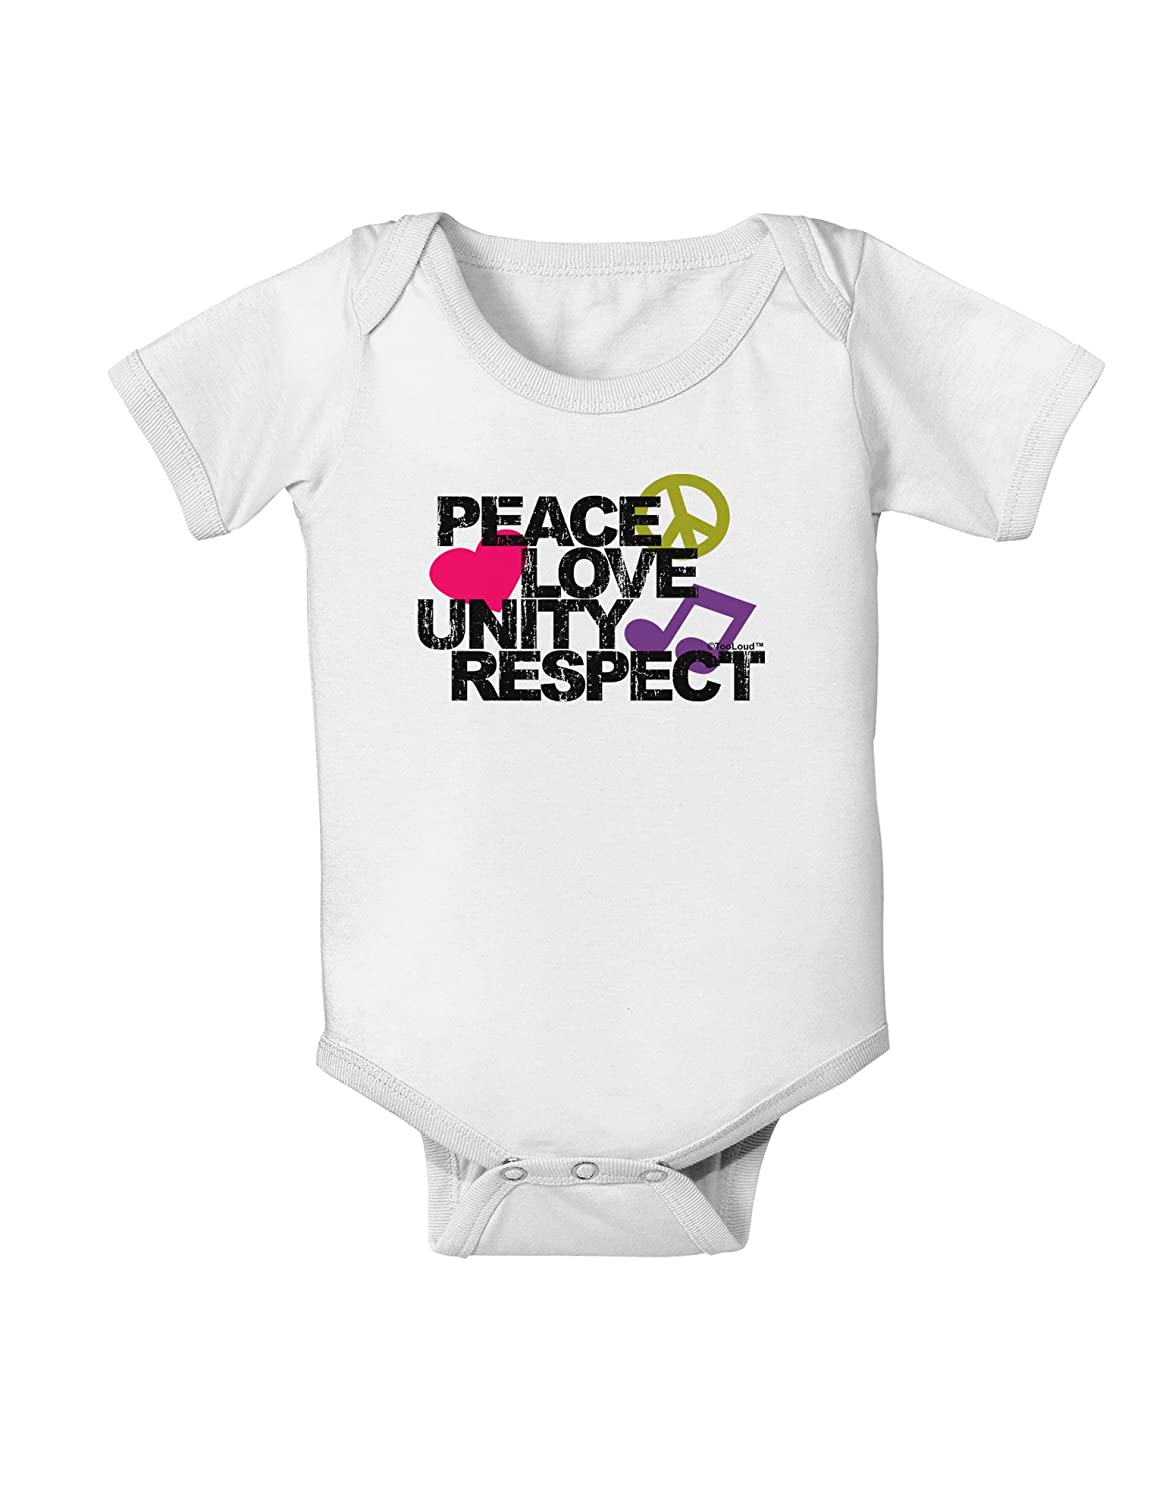 TooLoud Plur Distressed Text Baby Romper Bodysuit